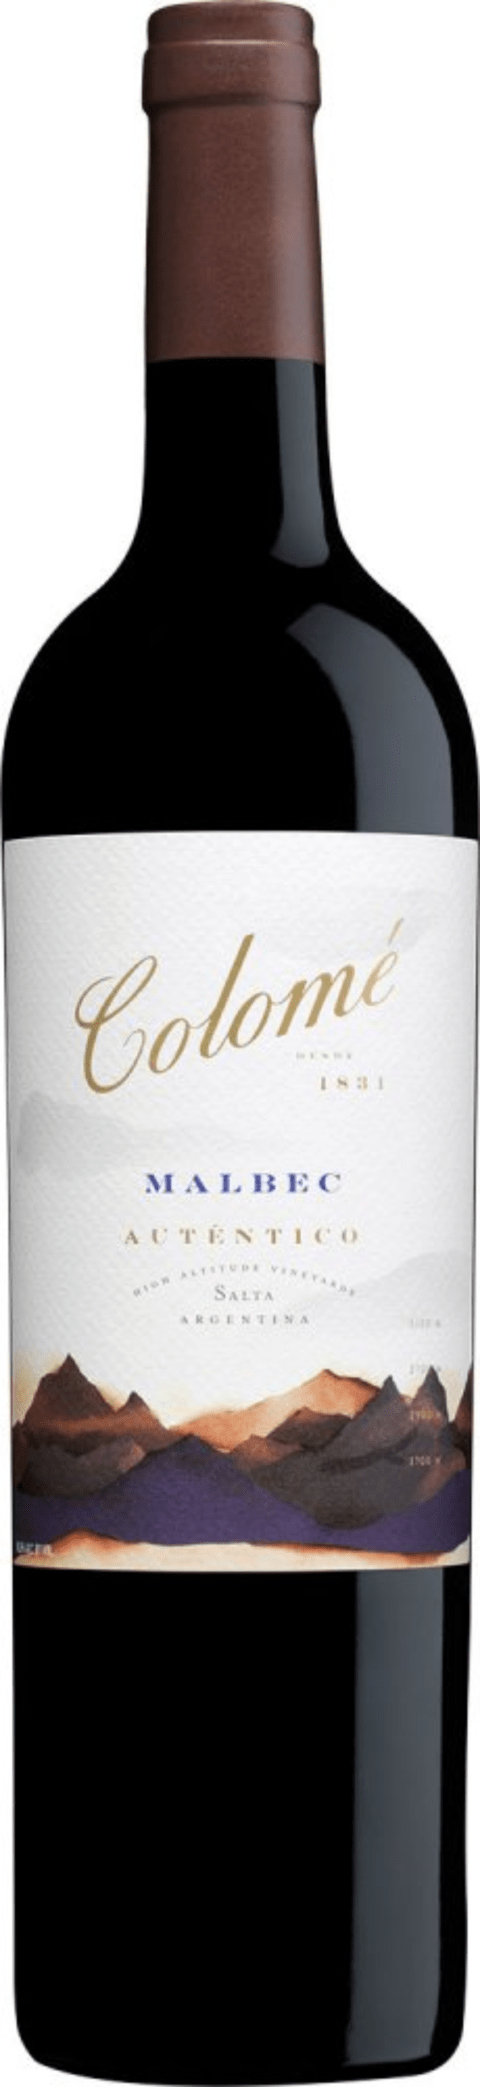 COLOME AUTENTICO MALBEC